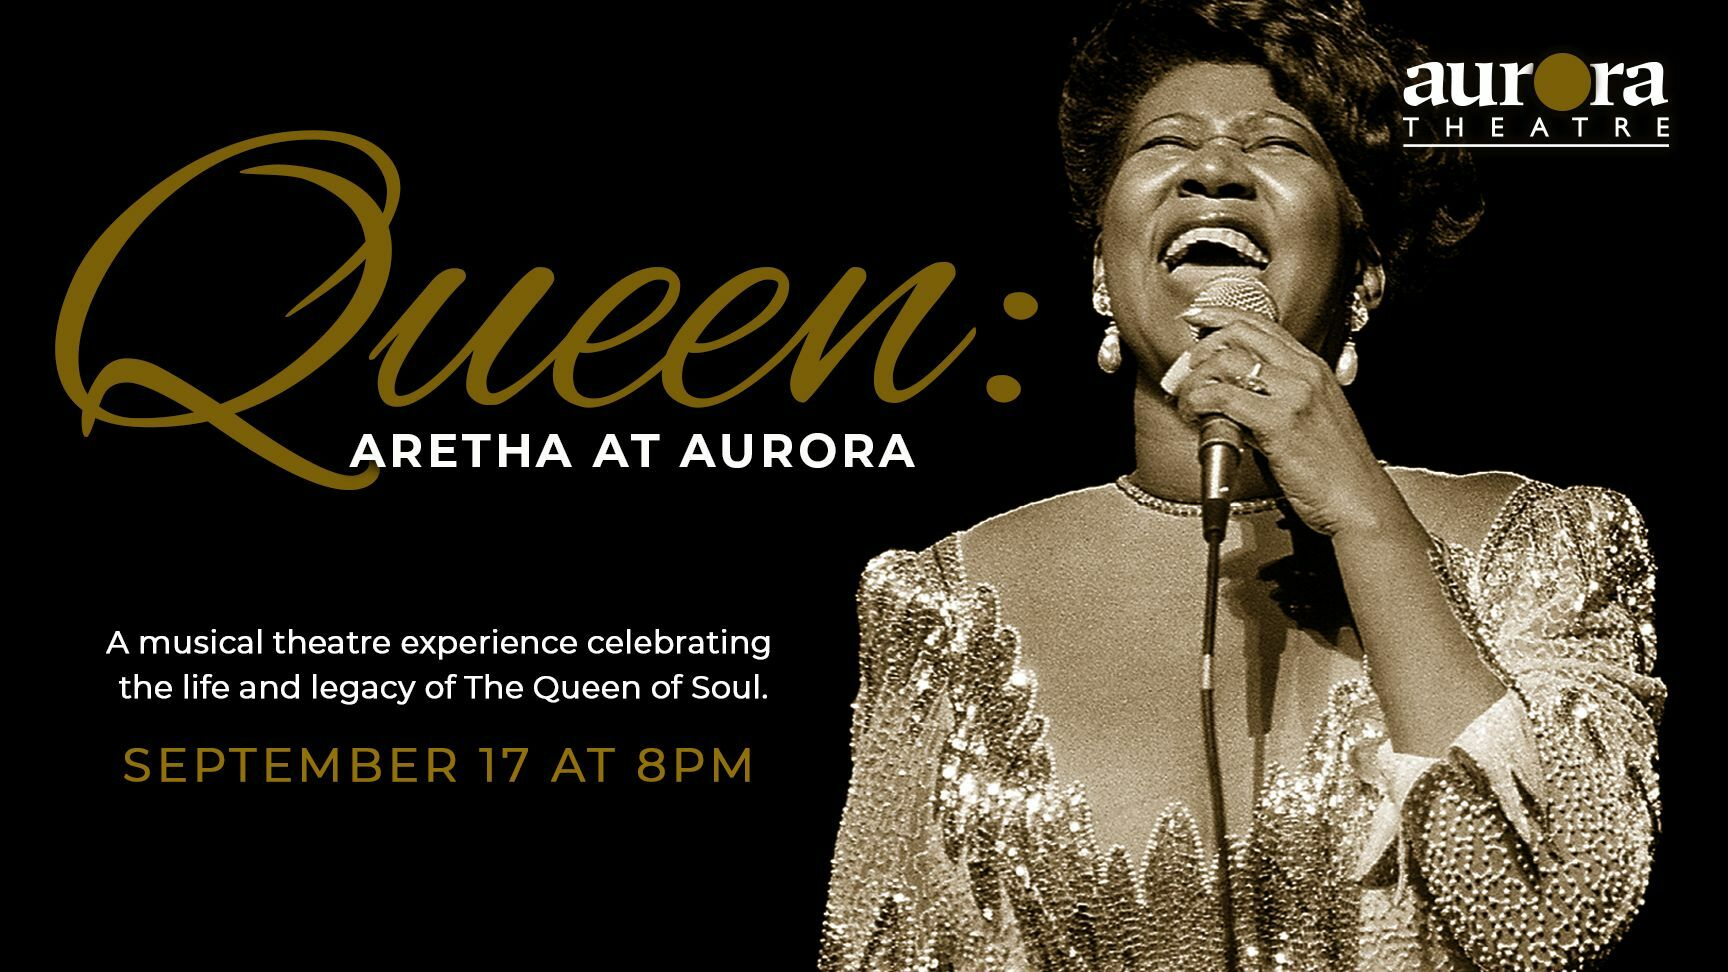 Queen: Aretha at Aurora